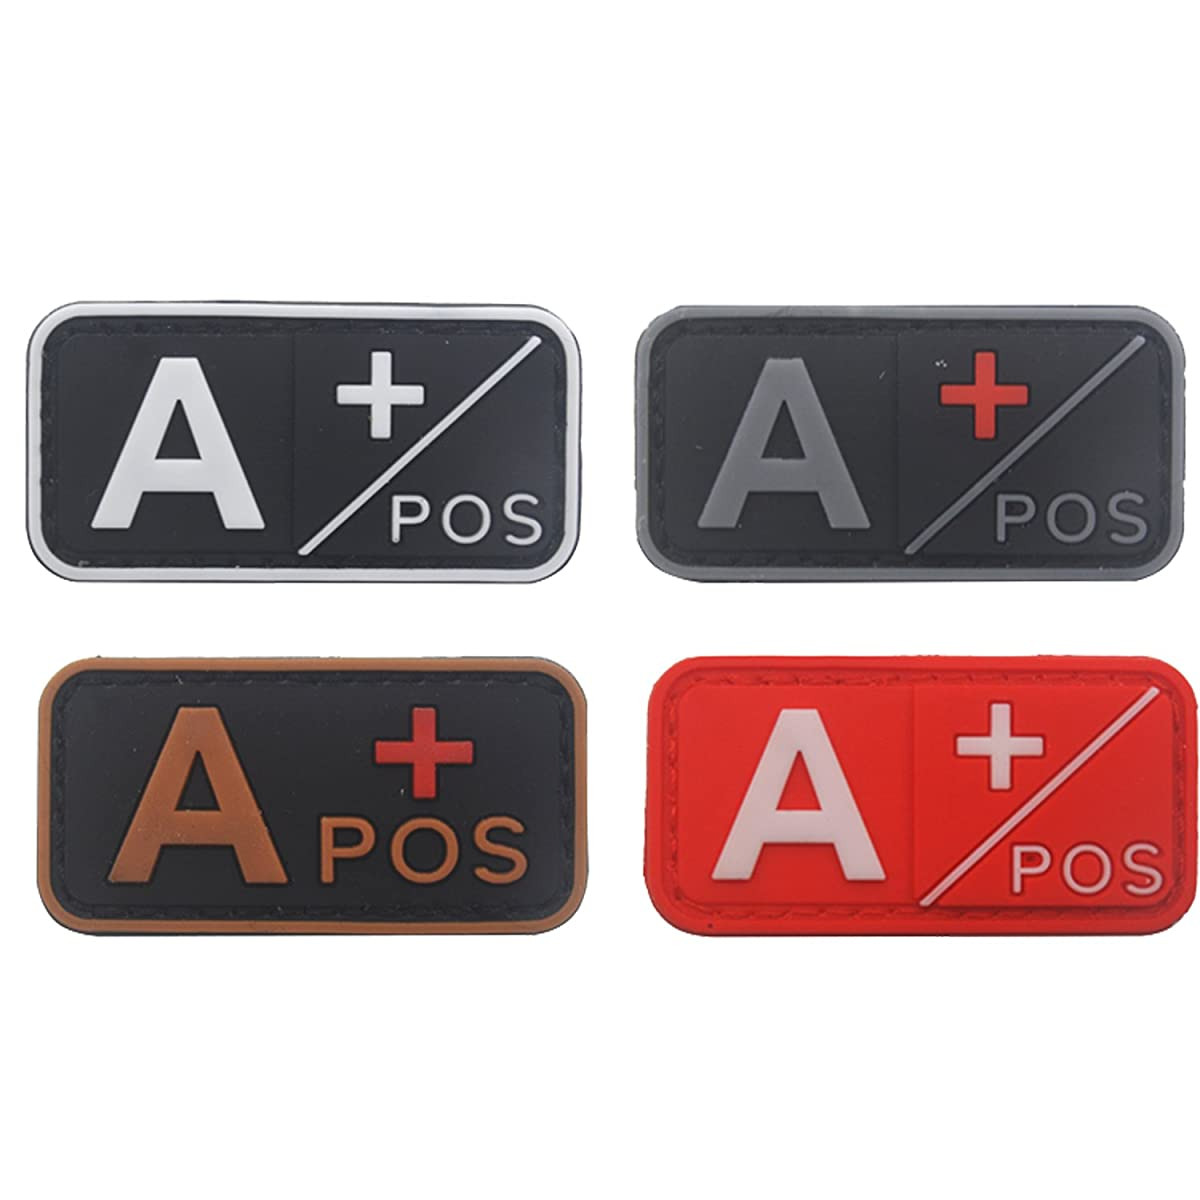 Blood Type Patch Kit A Pos, Tactical Type A Positive 3D PVC Rubber Fastener Patches, 1.97 X 0.98 Inch Sized, Bundle 4 Pieces